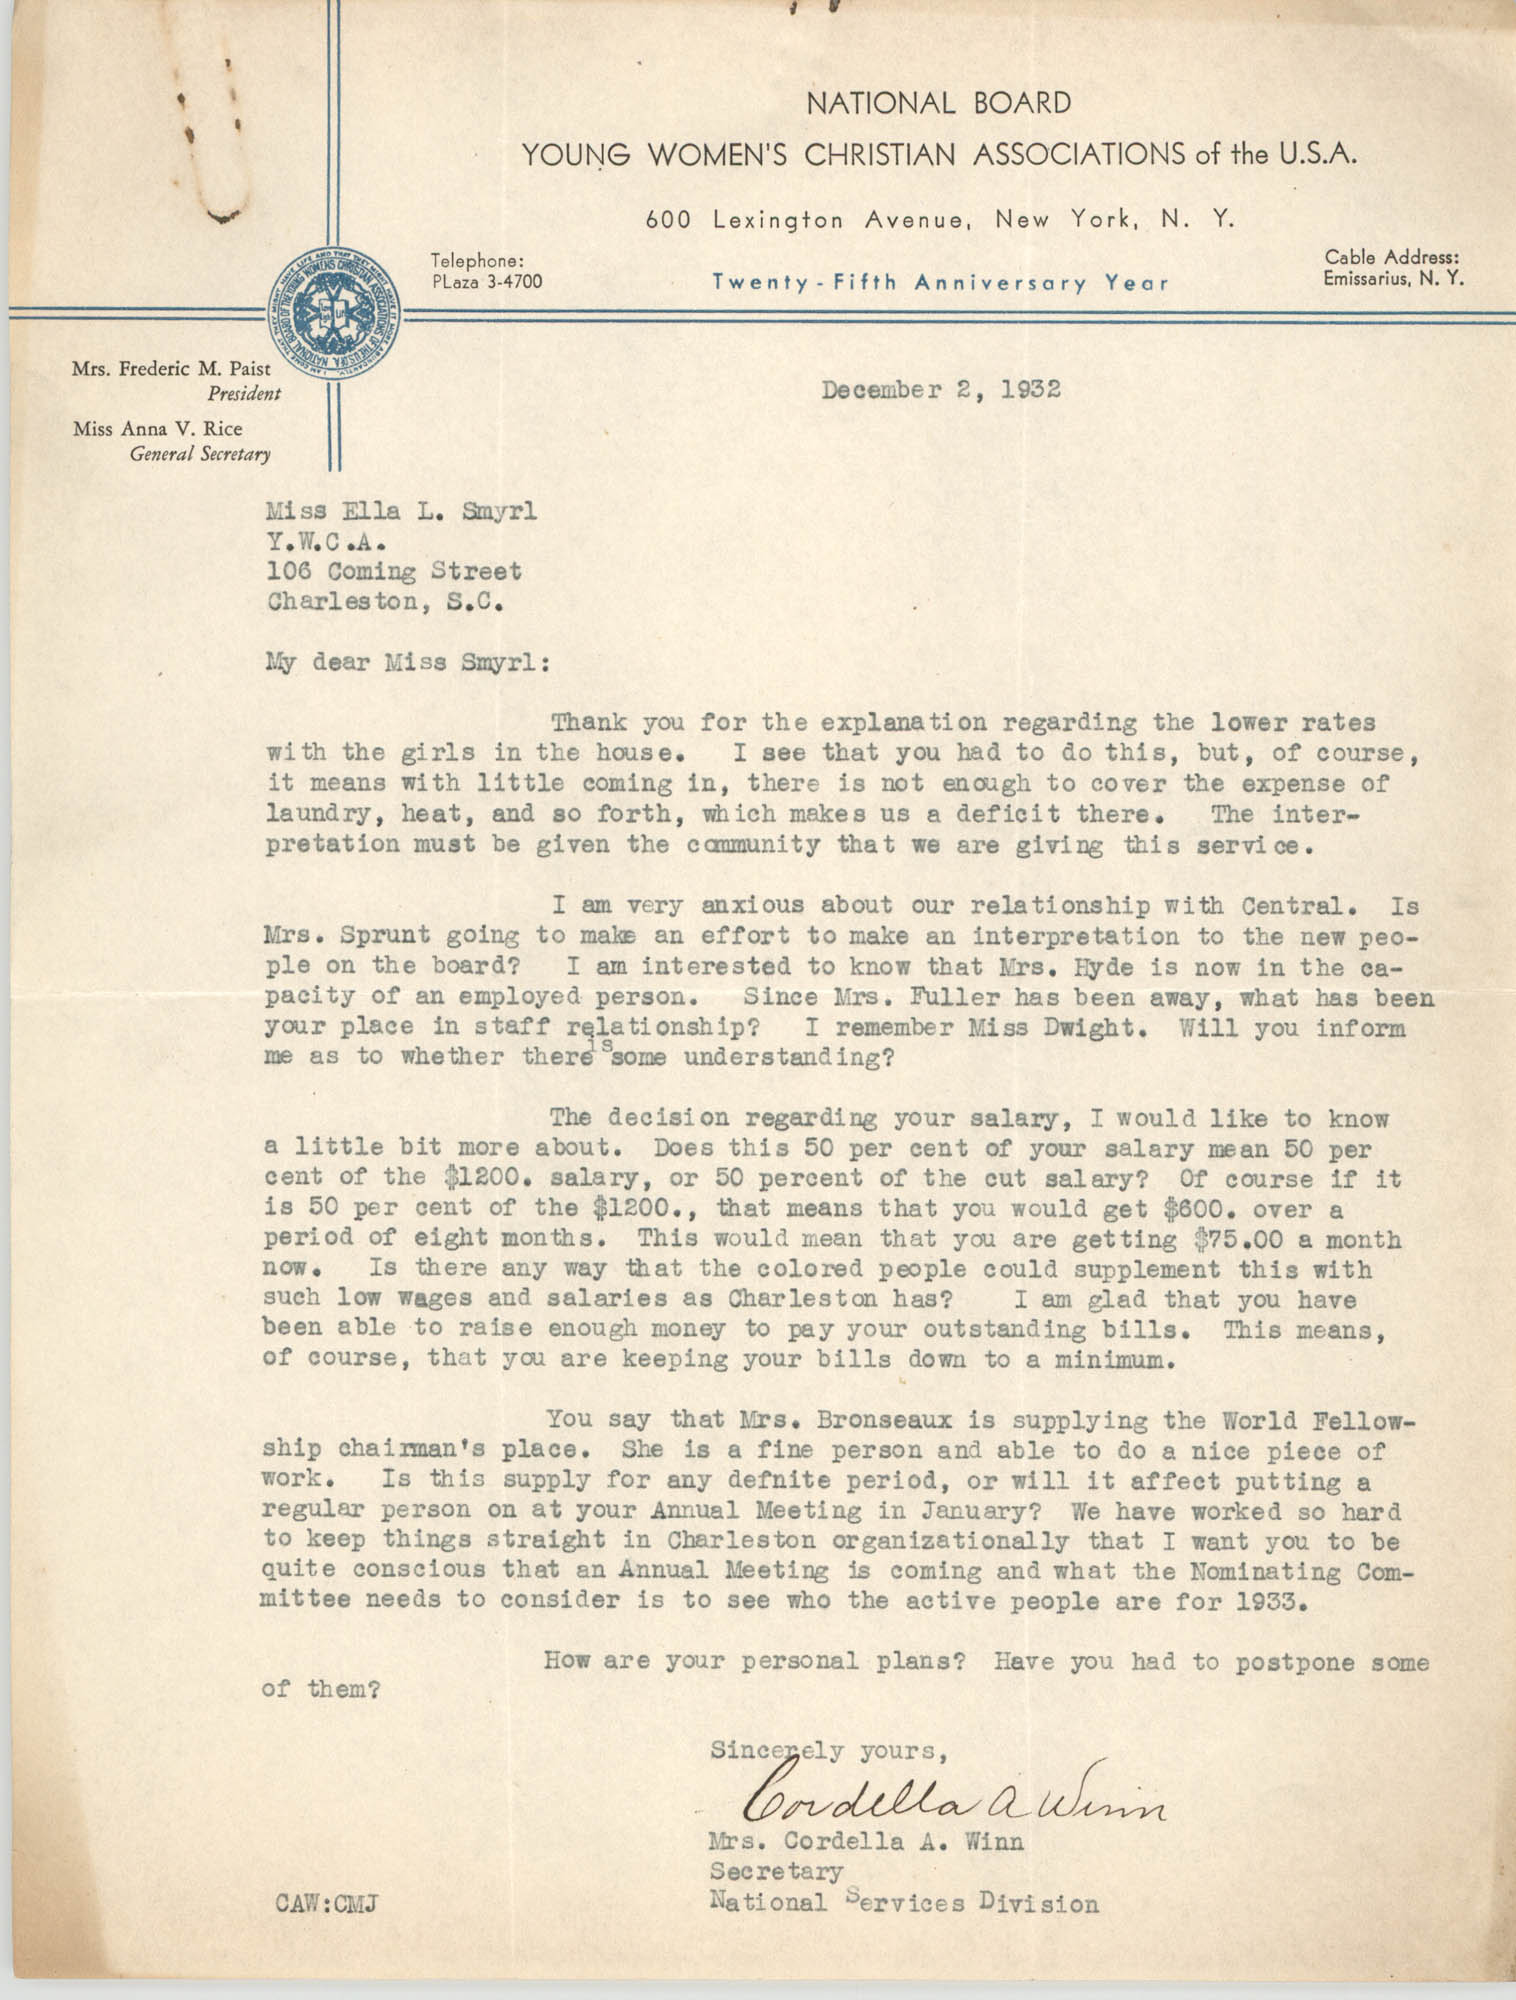 Letter from Cordella A. Winn to Ella L. Smyrl, December 2, 1932